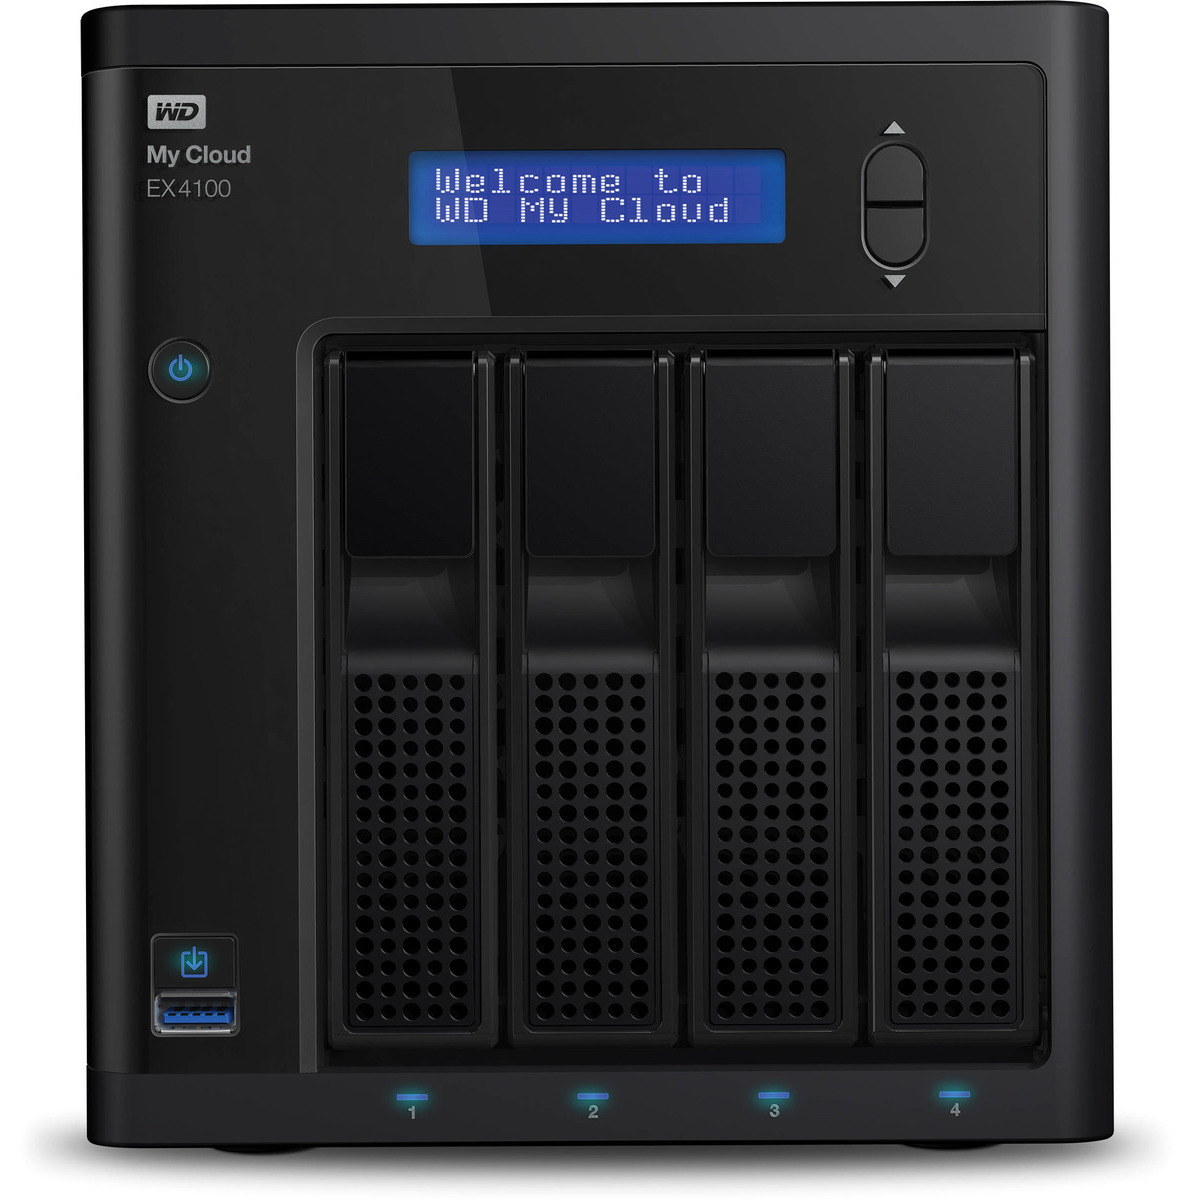 buy $943 Western Digital My Cloud EX4100 16tb Desktop NAS - Network Attached Storage Device 4x4000gb Western Digital Red WD40EFRX 3.5 IntelliPower SATA 6Gb/s HDD NAS Class Drives Installed - Burn-In Tested - nas headquarters buy network attached storage server device das new raid-5 free shipping usa spring inventory clearance sale happening now My Cloud EX4100